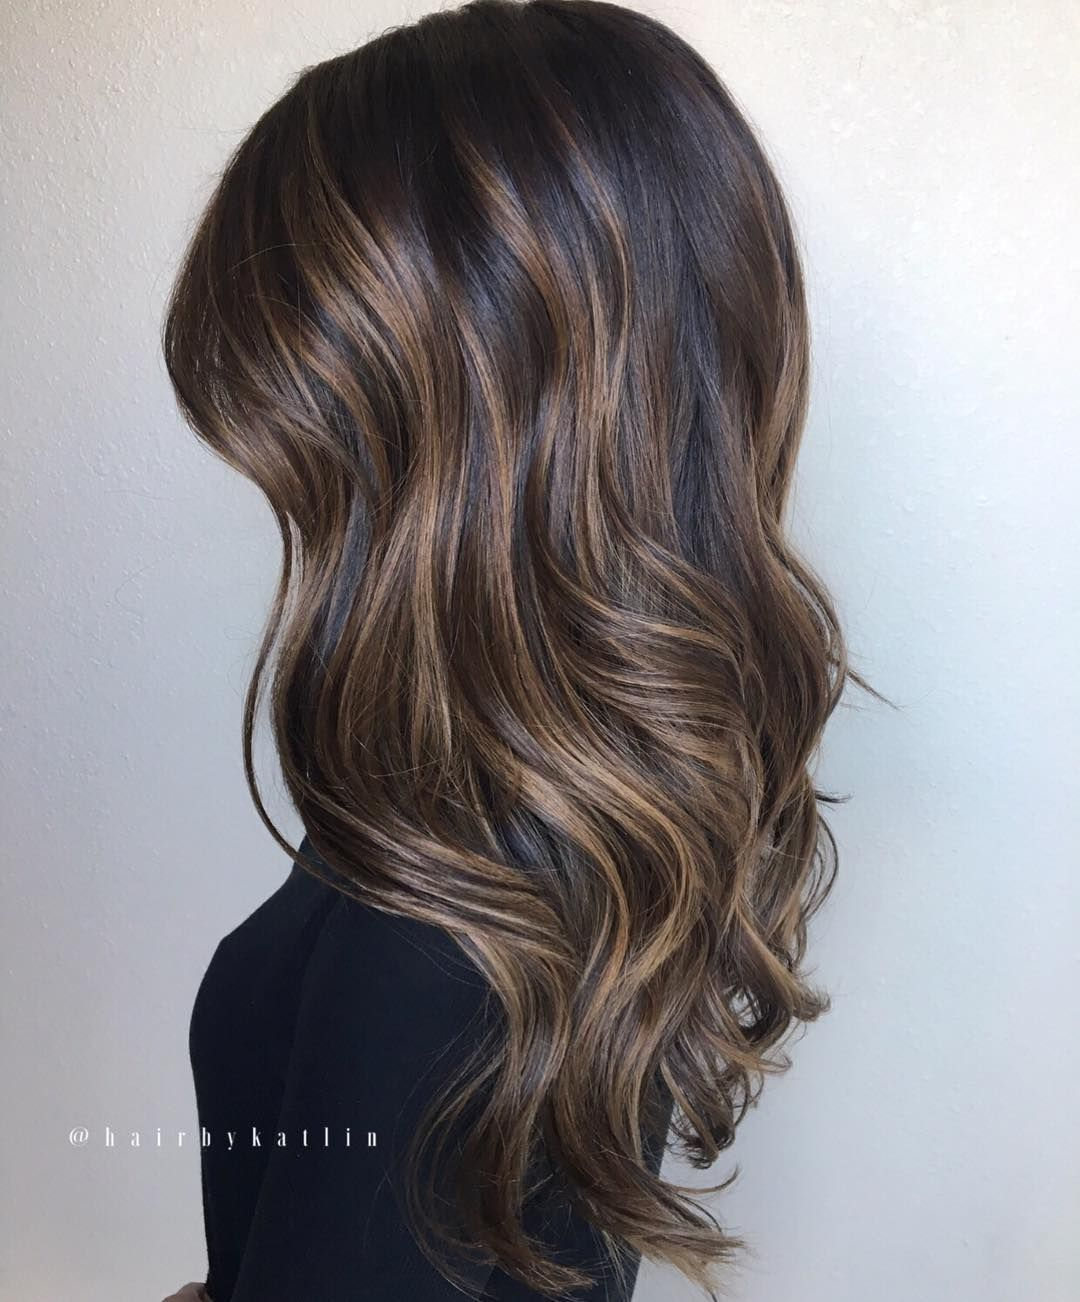 41 Brown Hair Color With Highlights Will Change Your Look Fabmood Wedding Colors Wedding Themes Wedd Hair Streaks Hair Color Highlights Brown Hair Colors